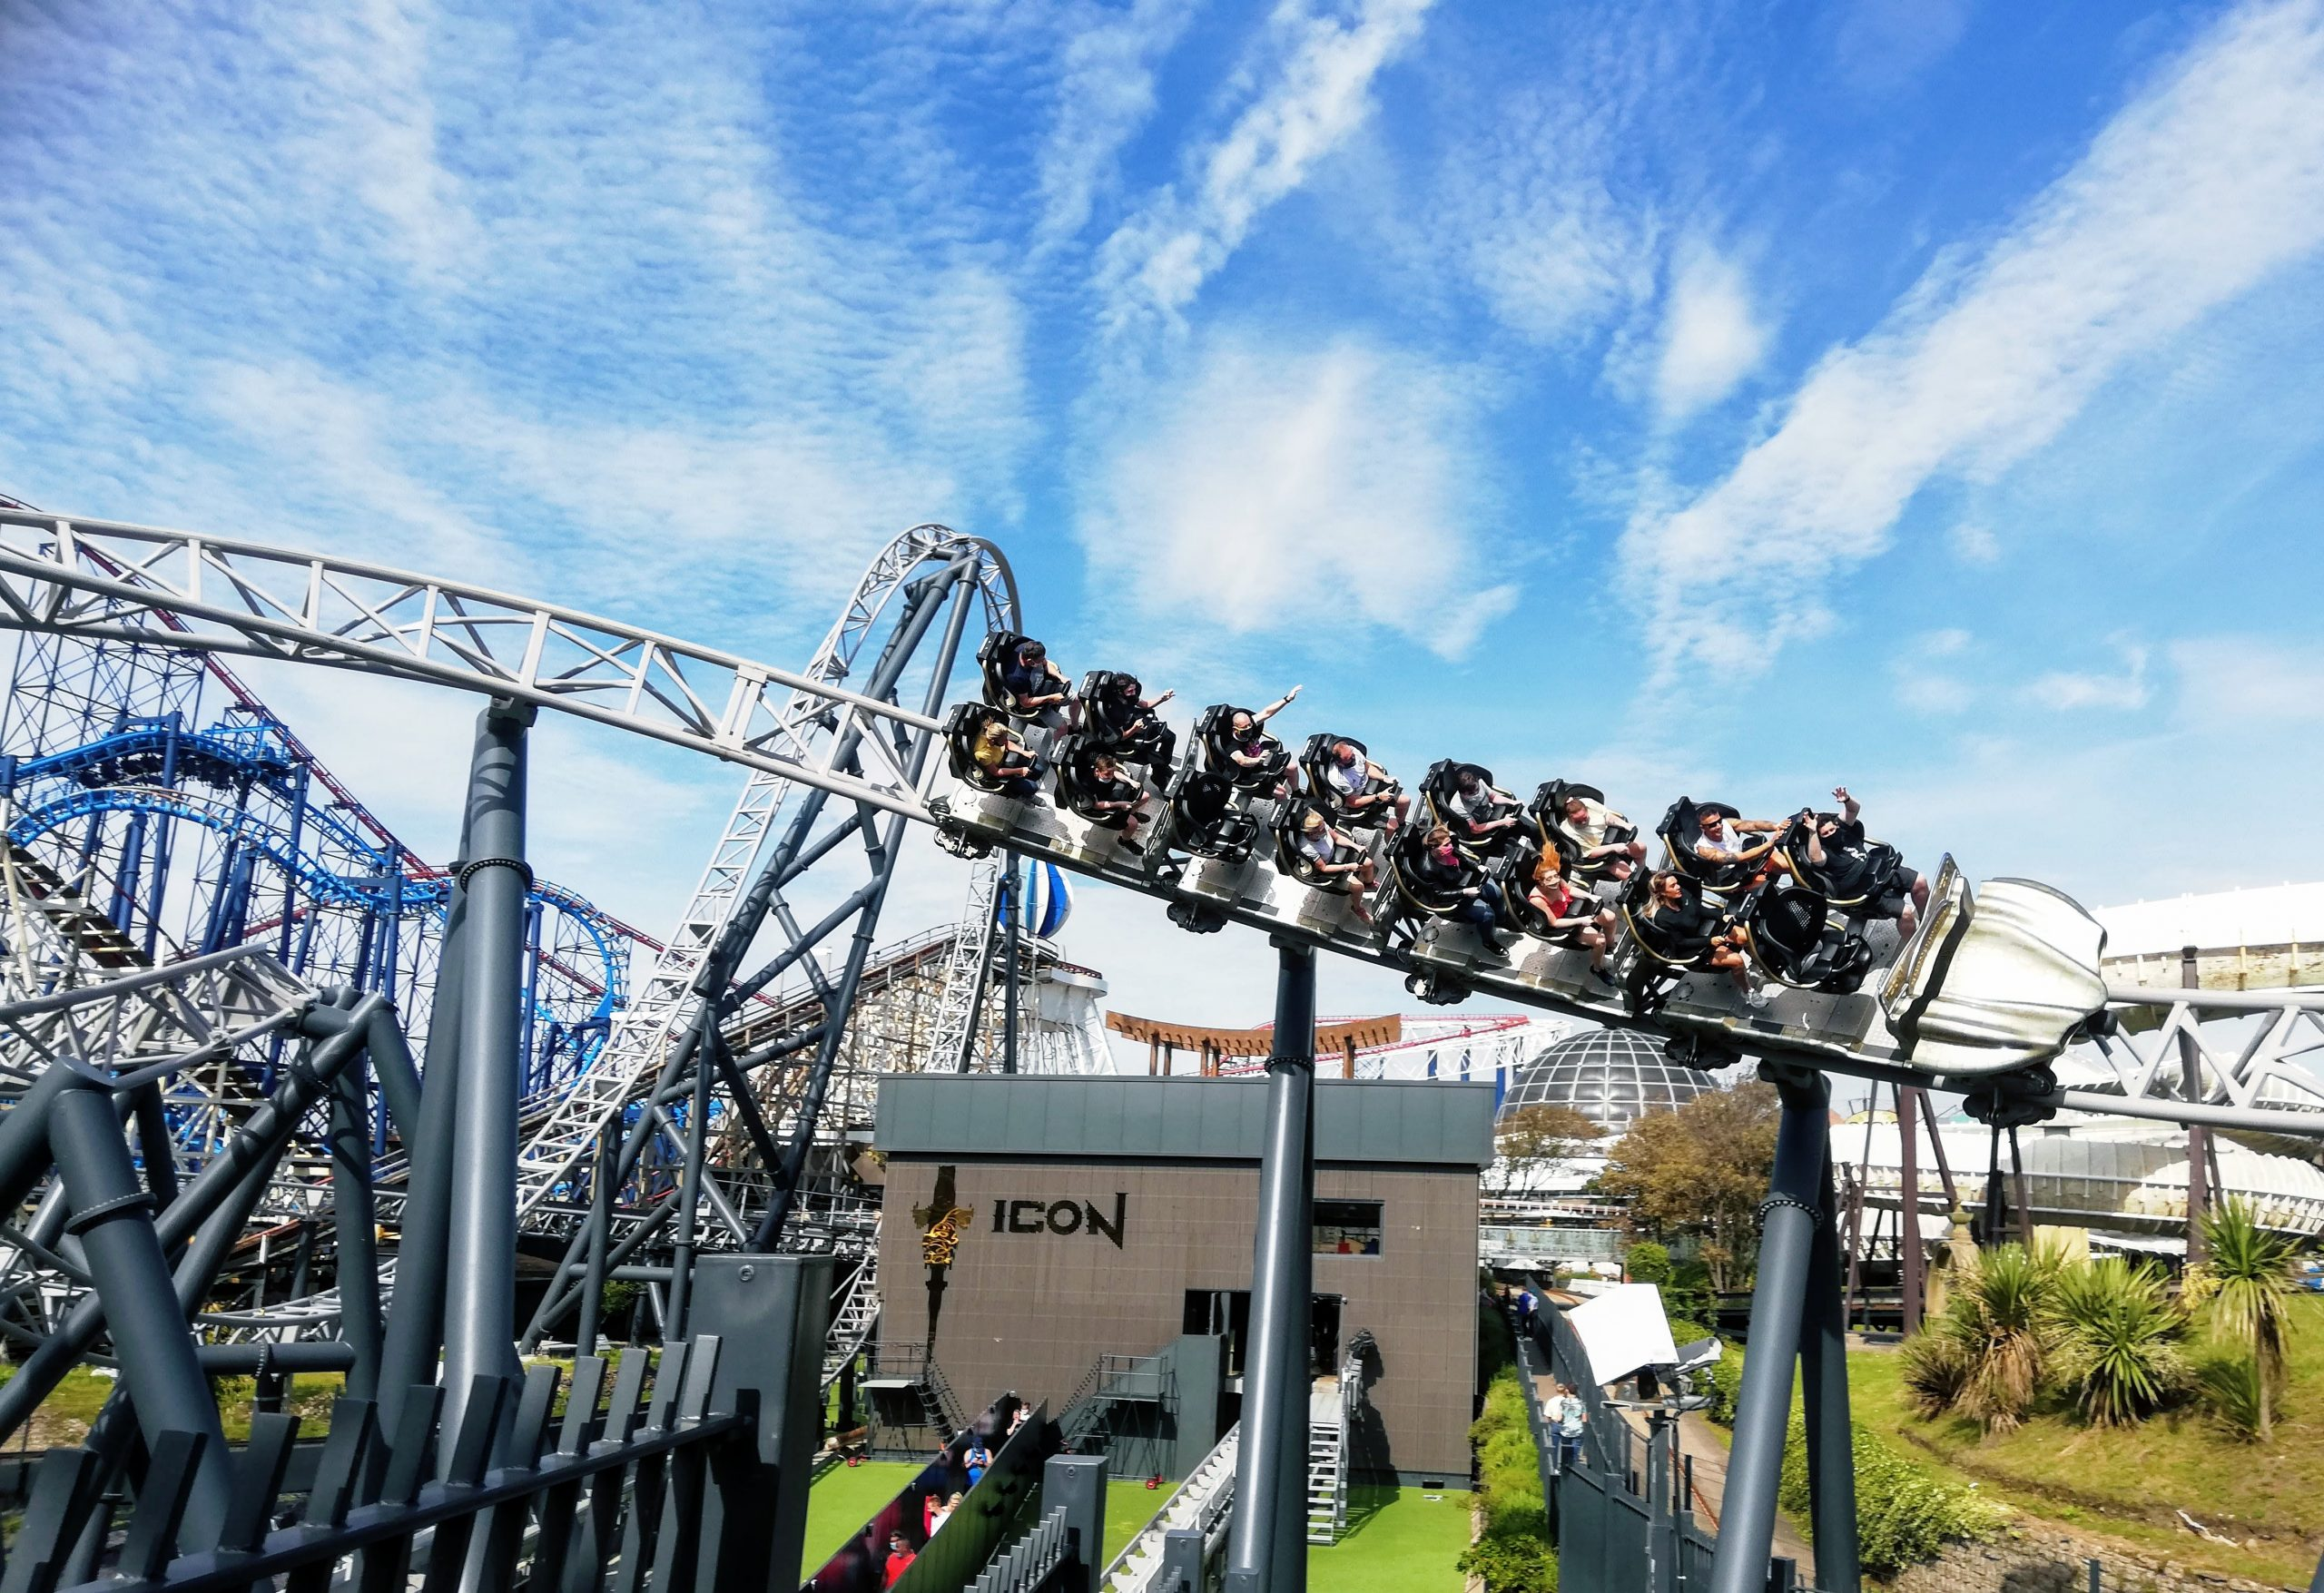 Icon rollercoaster at Blackpool Pleasure Beach